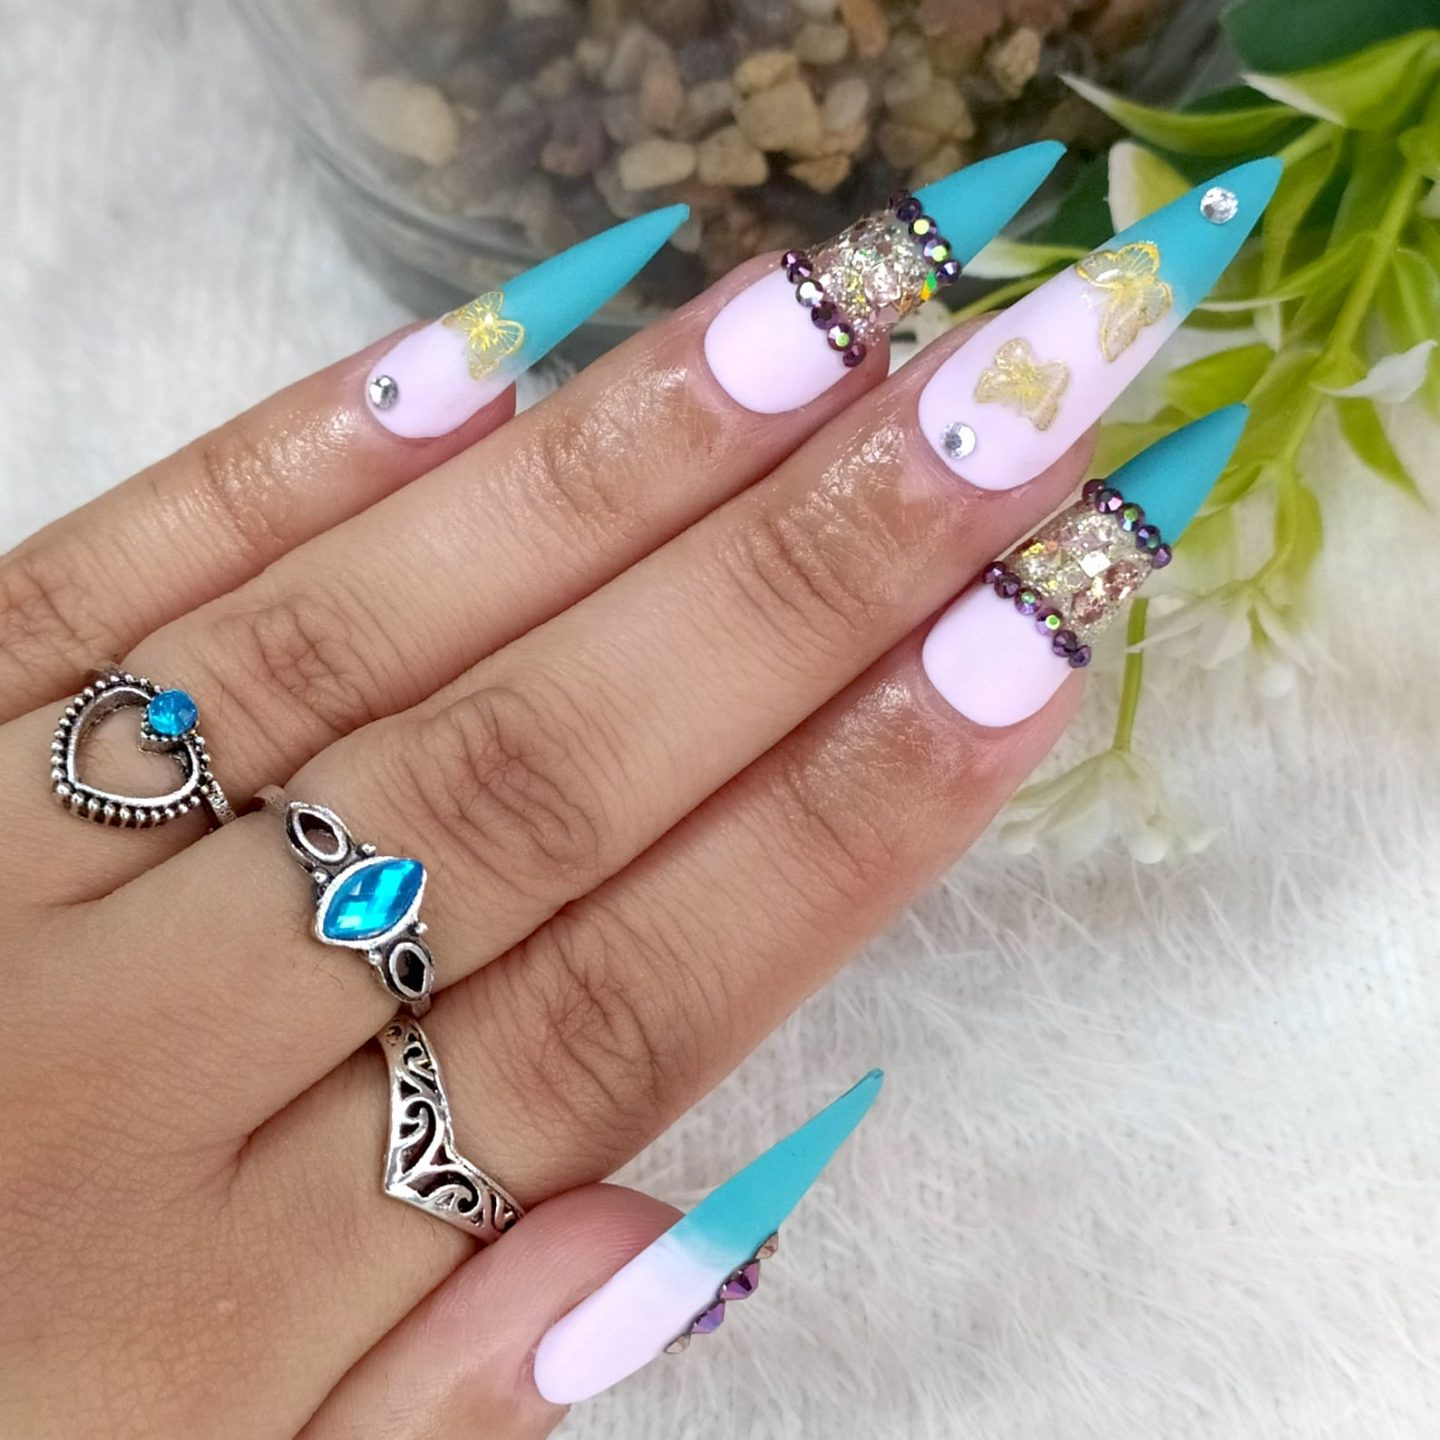 Long stiletto nails with turquoise French tips and rhinestones